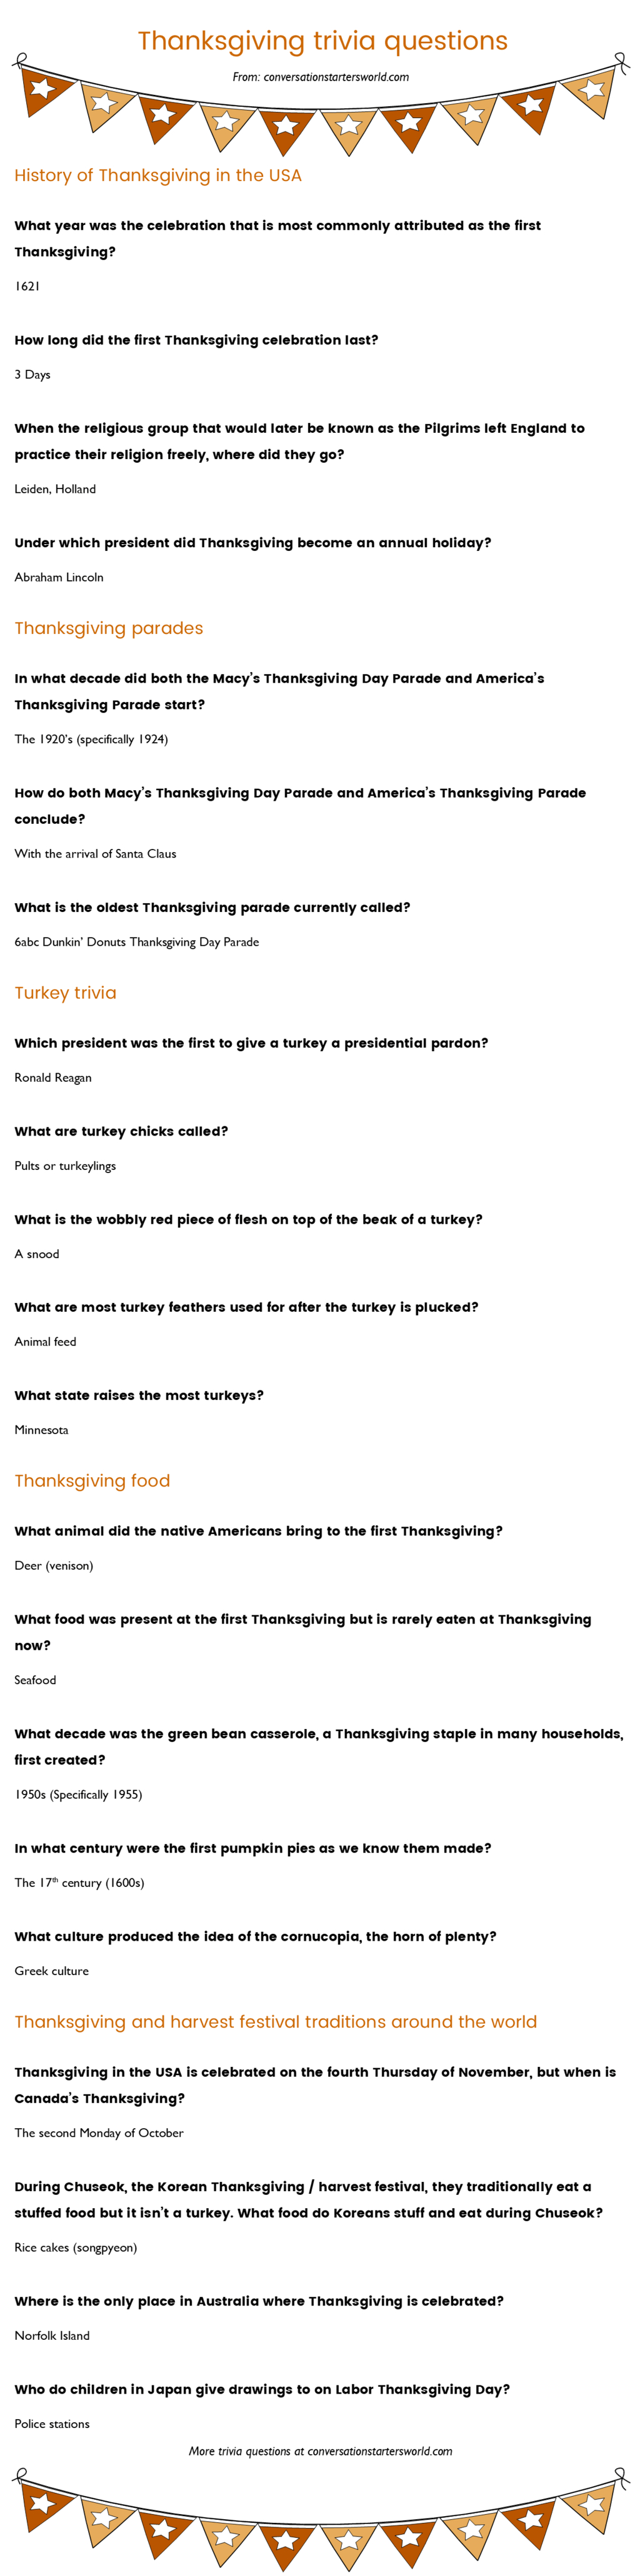 21 Thanksgiving Trivia Questions Most People Don't Know The Answer To - Halloween Trivia Questions And Answers Free Printable